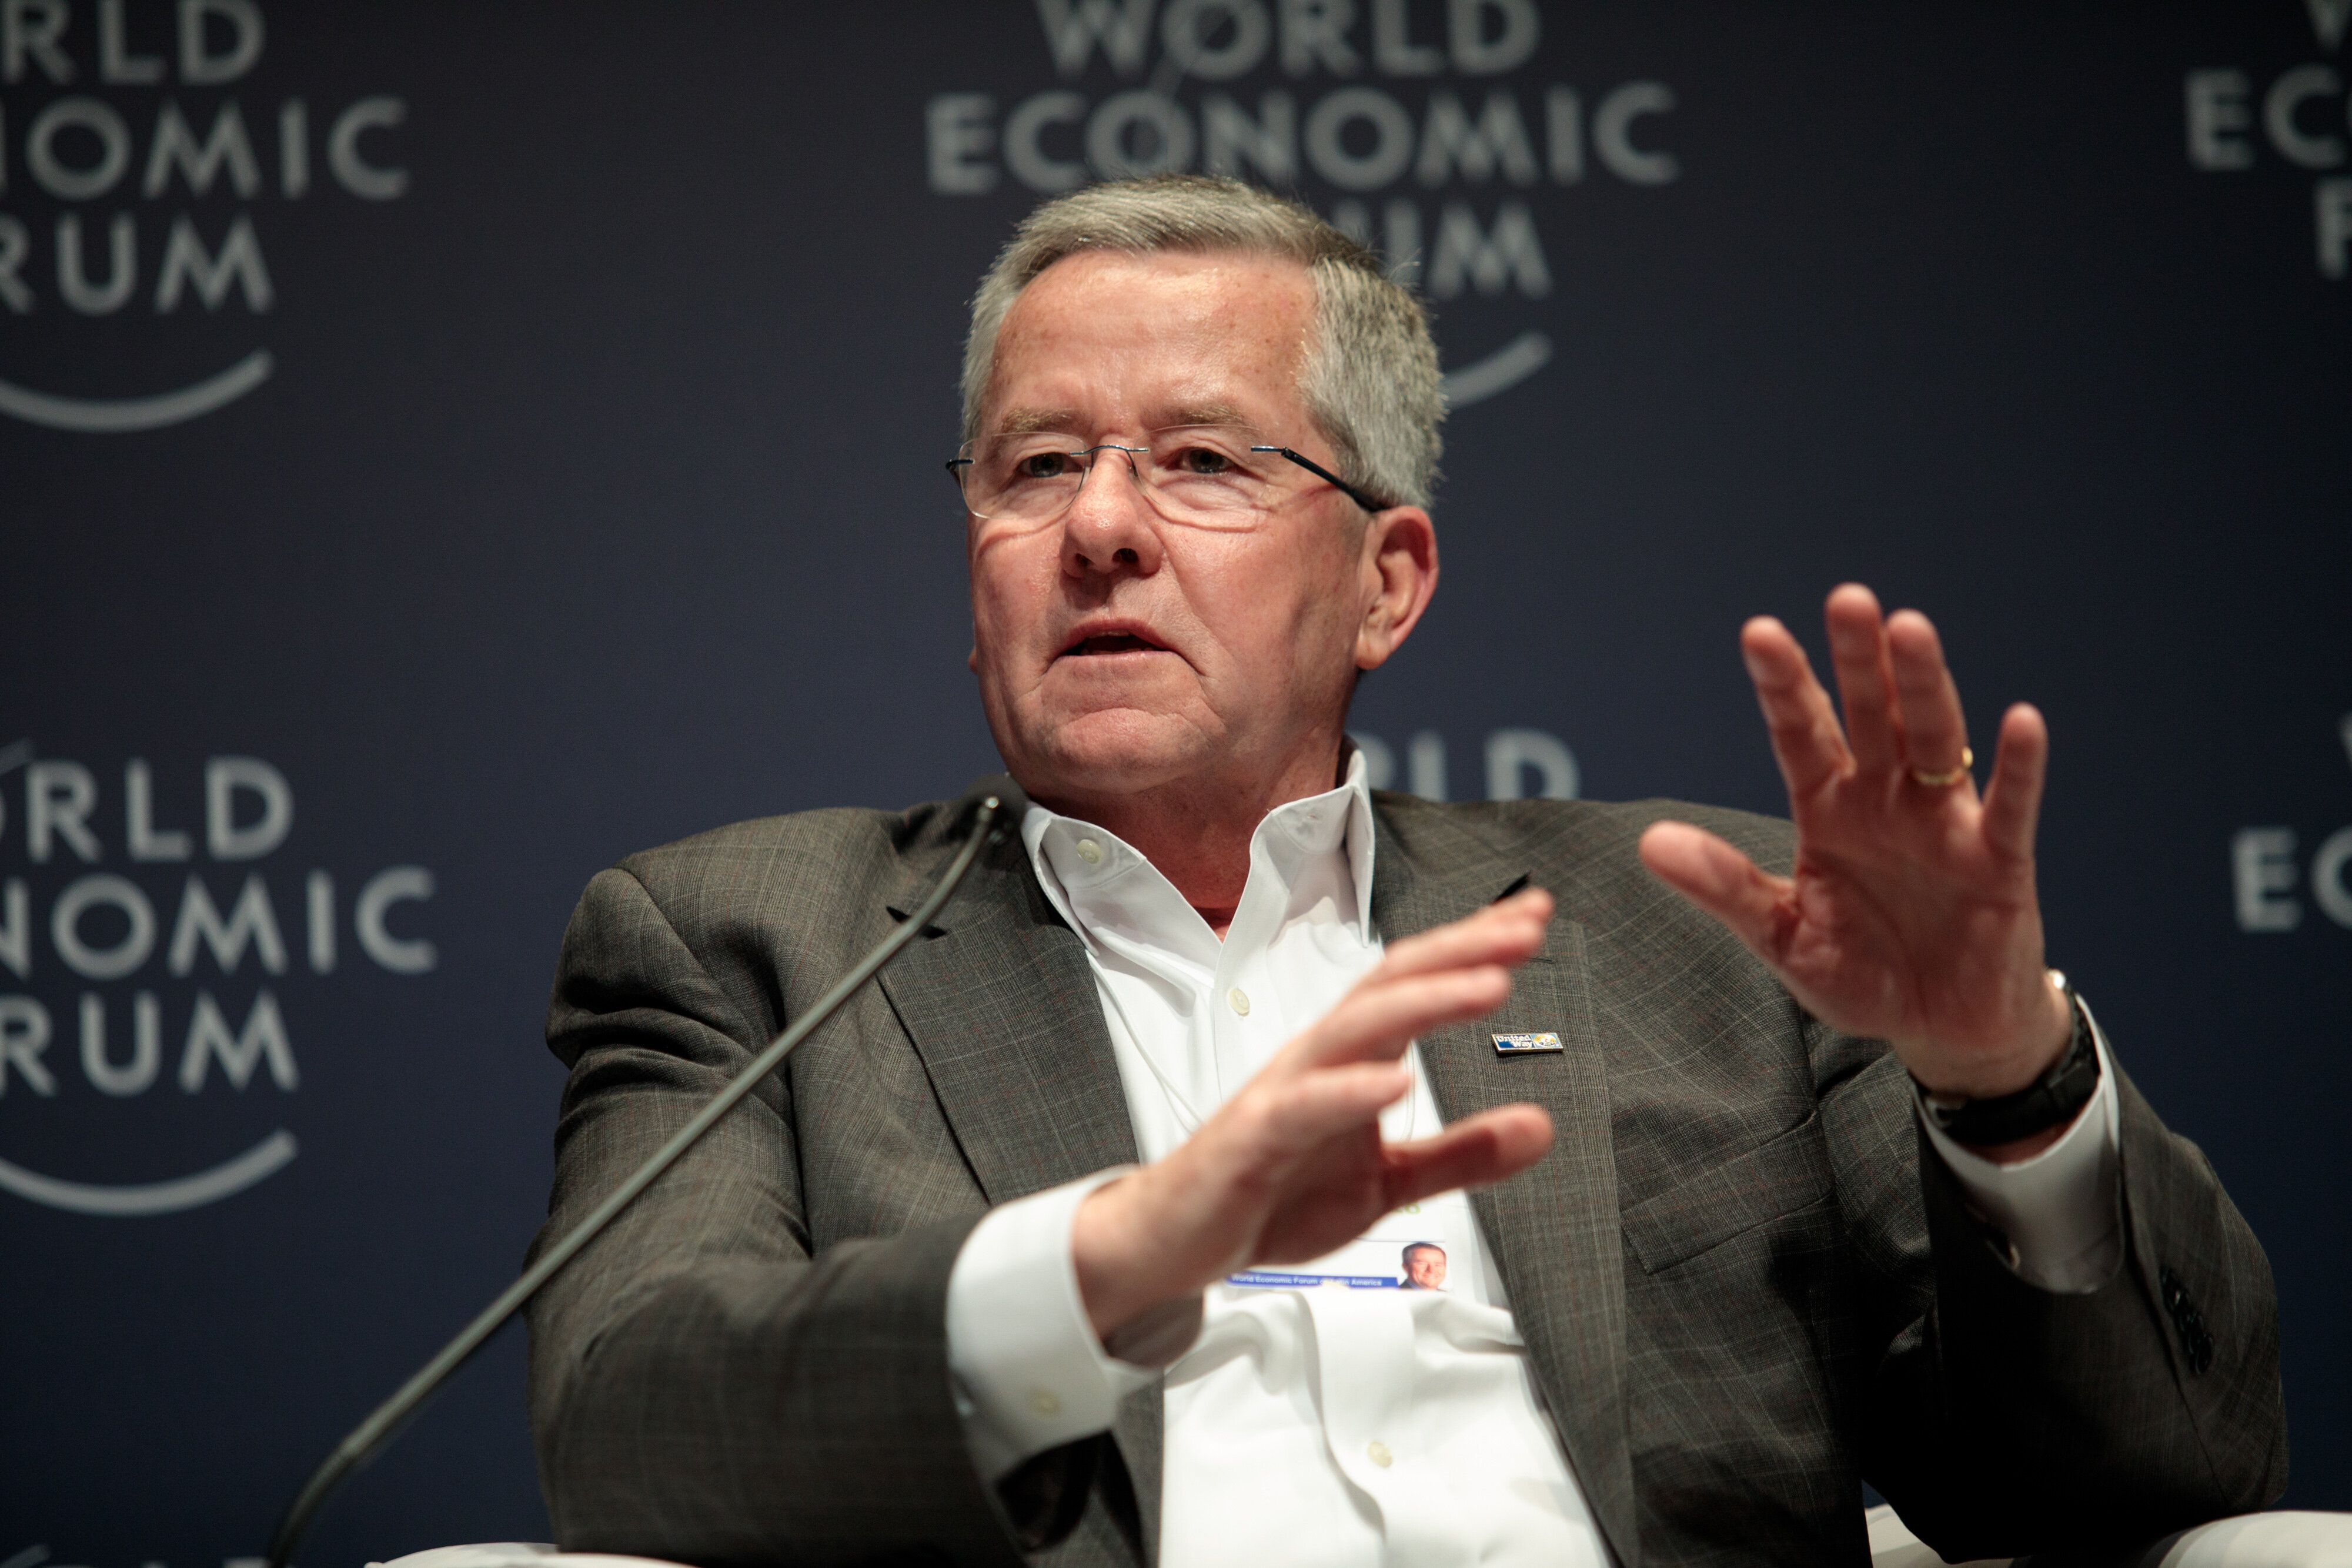 Brian Gallagher, president and chief executive officer of United Way Worldwide, speaking during the 2018 World Economic Forum